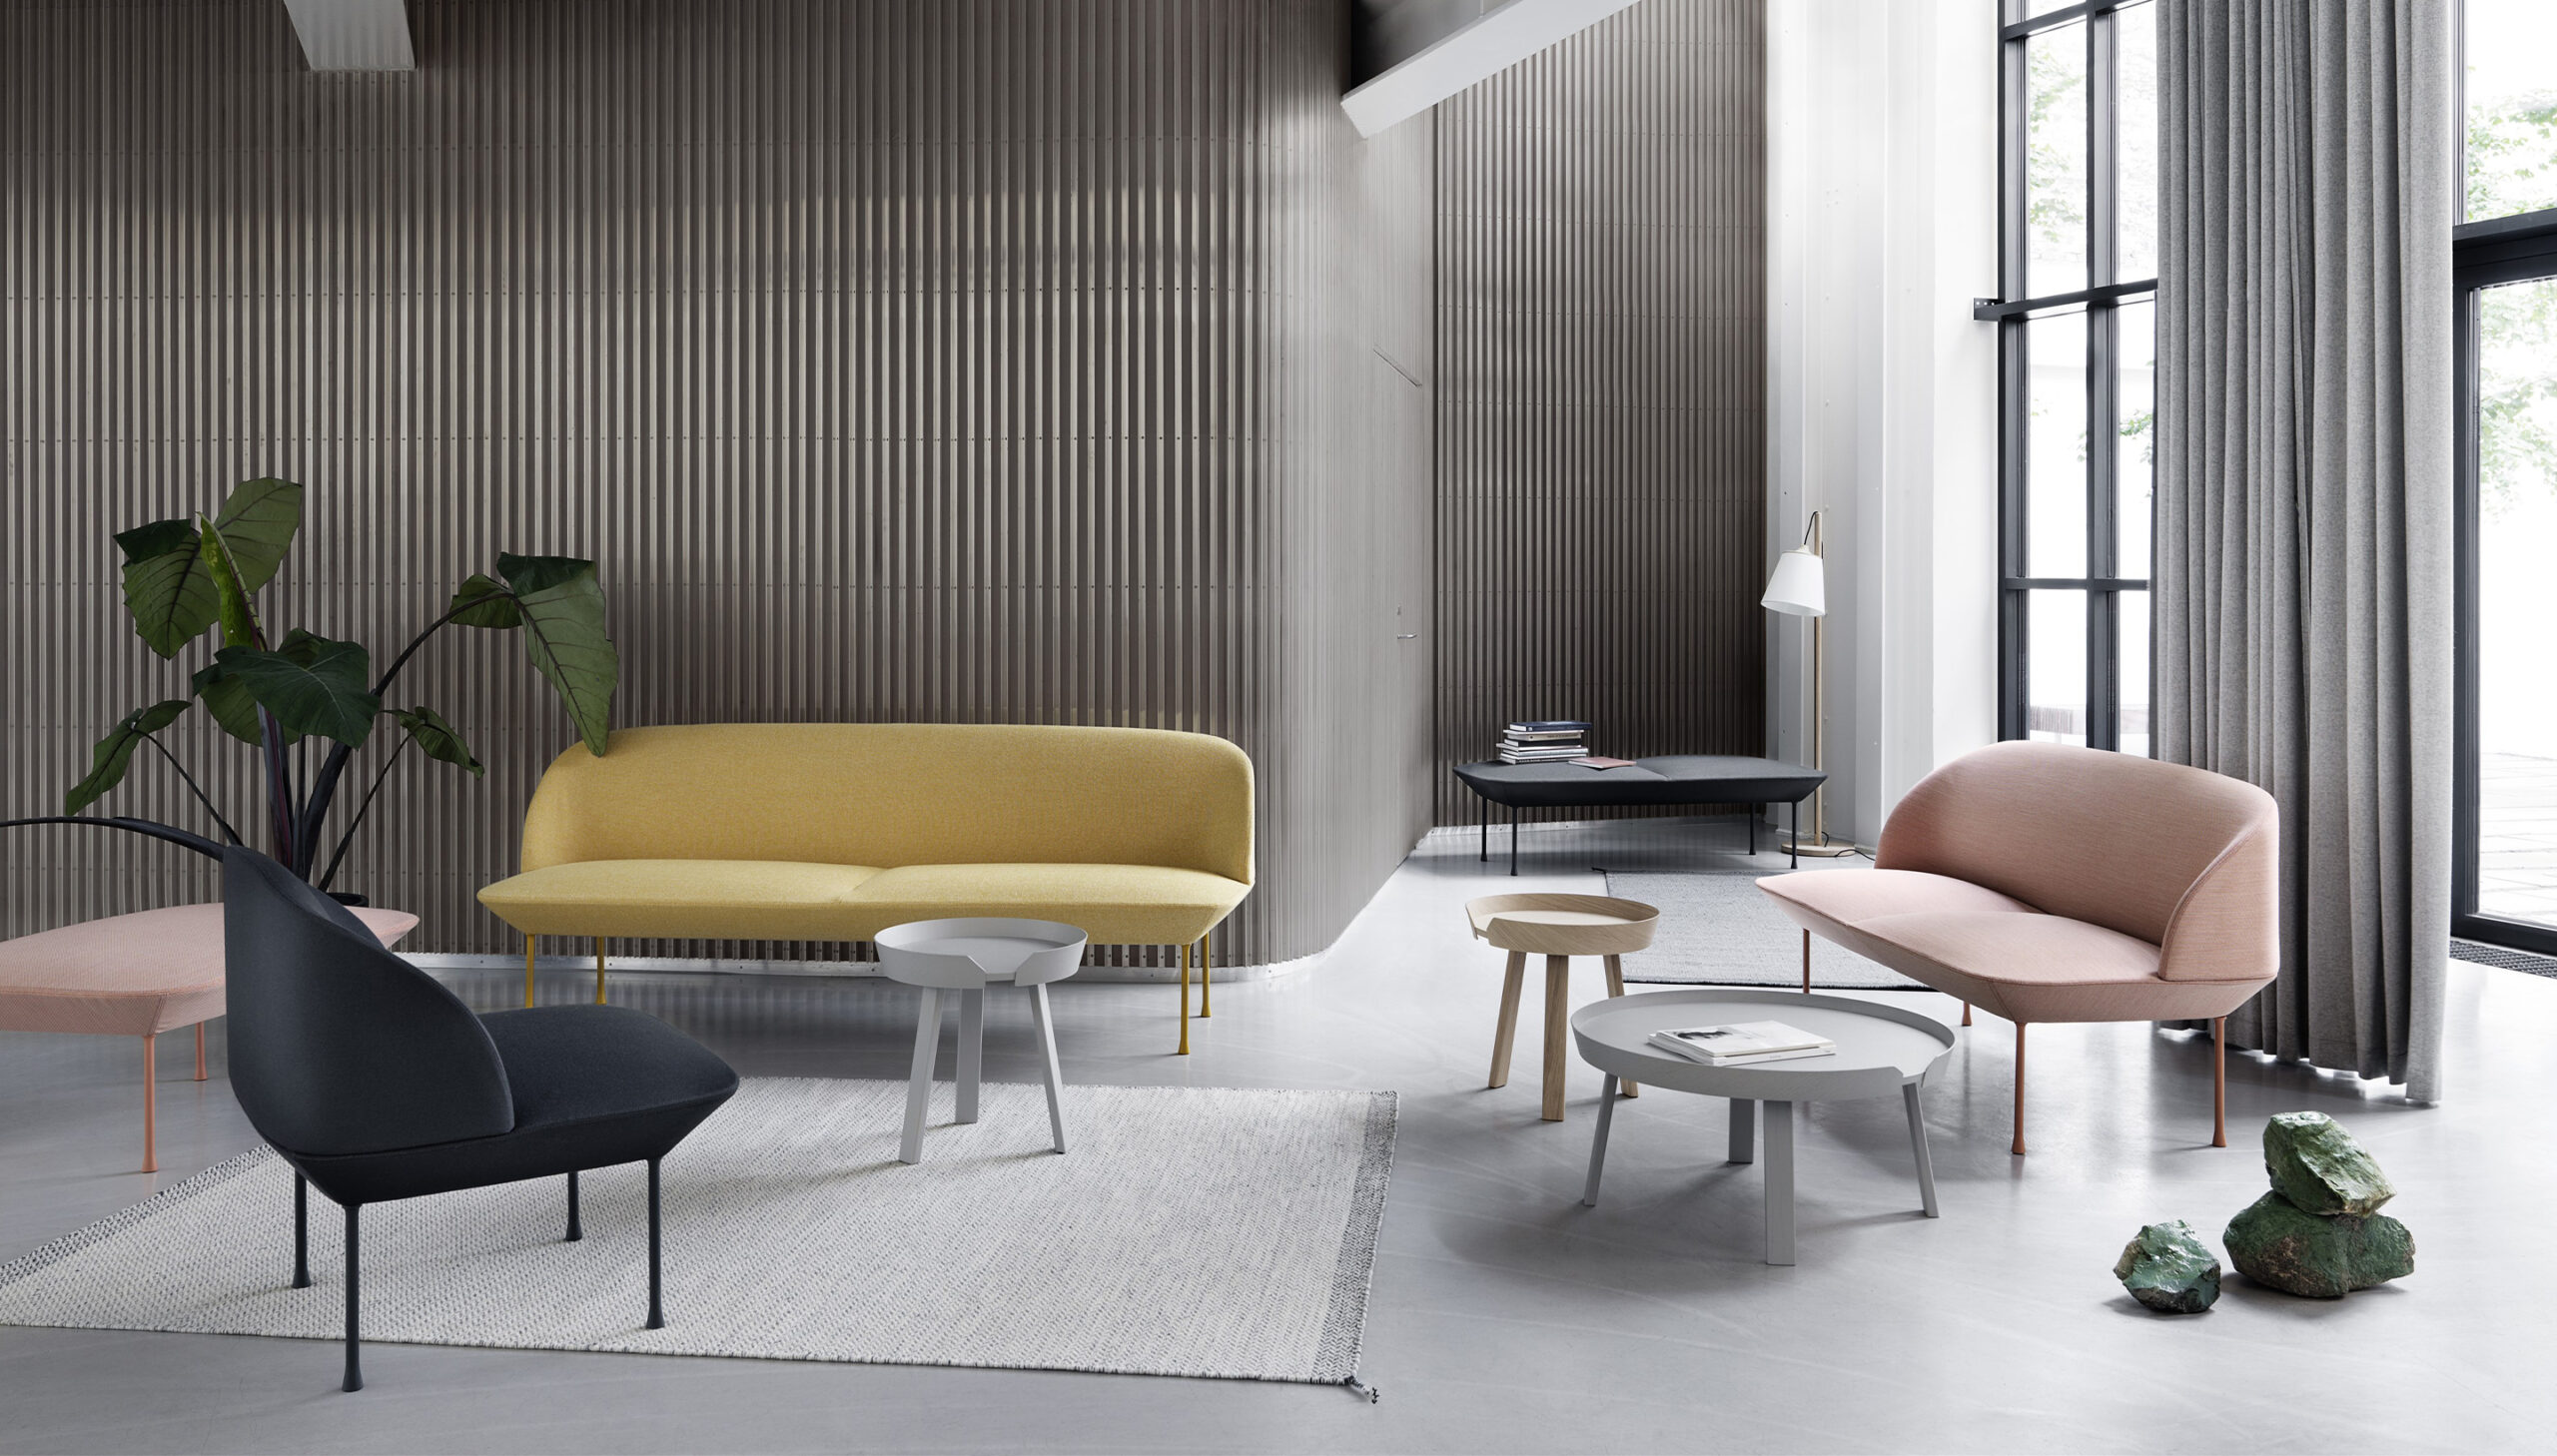 Full Size of Muuto Sofa Workshop Sofabord Eg Modular Connect Outline Dimensions Uk 2 Seater Oslo 3 Sitzer Workbrands Riess Ambiente L Mit Schlaffunktion Big U Form Sofa Muuto Sofa